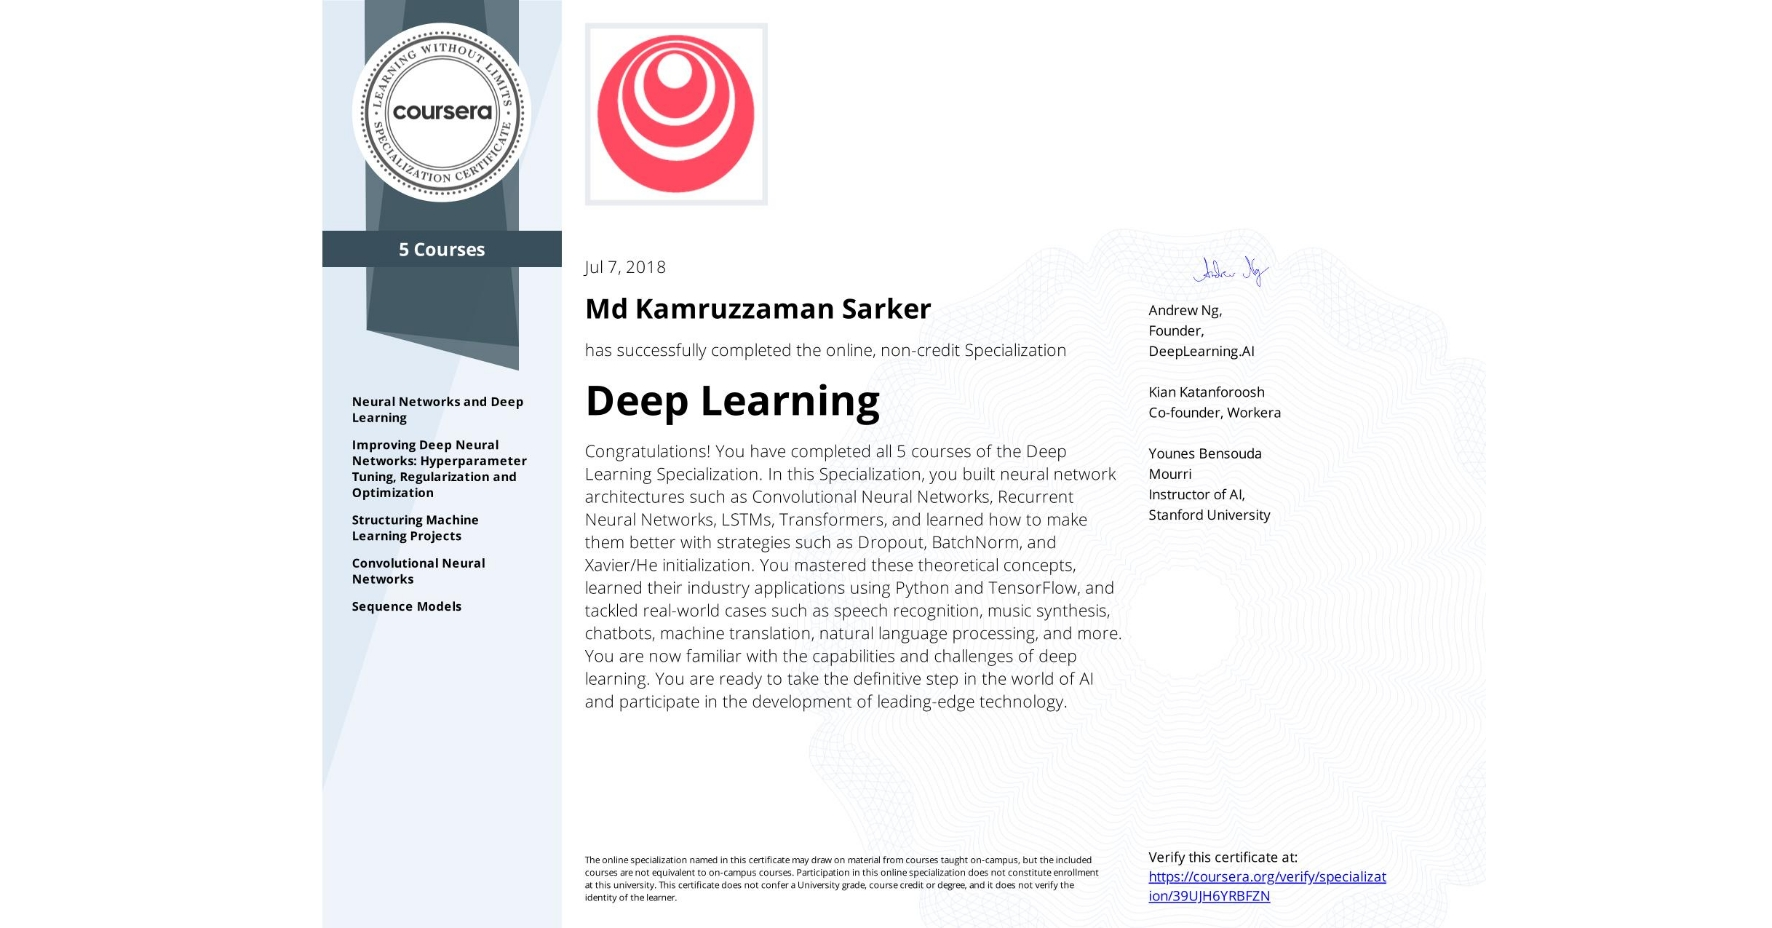 View certificate for Md Kamruzzaman  Sarker, Deep Learning, offered through Coursera. Congratulations! You have completed all five courses of the Deep Learning Specialization.  In this Specialization, you built neural network architectures such as Convolutional Neural Networks, Recurrent Neural Networks, LSTMs, Transformers and learned how to make them better with strategies such as Dropout, BatchNorm, Xavier/He initialization, and more. You mastered these theoretical concepts and their application using Python and TensorFlow and also tackled real-world case studies such as autonomous driving, sign language reading, music generation, computer vision, speech recognition, and natural language processing.   You're now familiar with the capabilities, challenges, and consequences of deep learning and are ready to participate in the development of leading-edge AI technology.